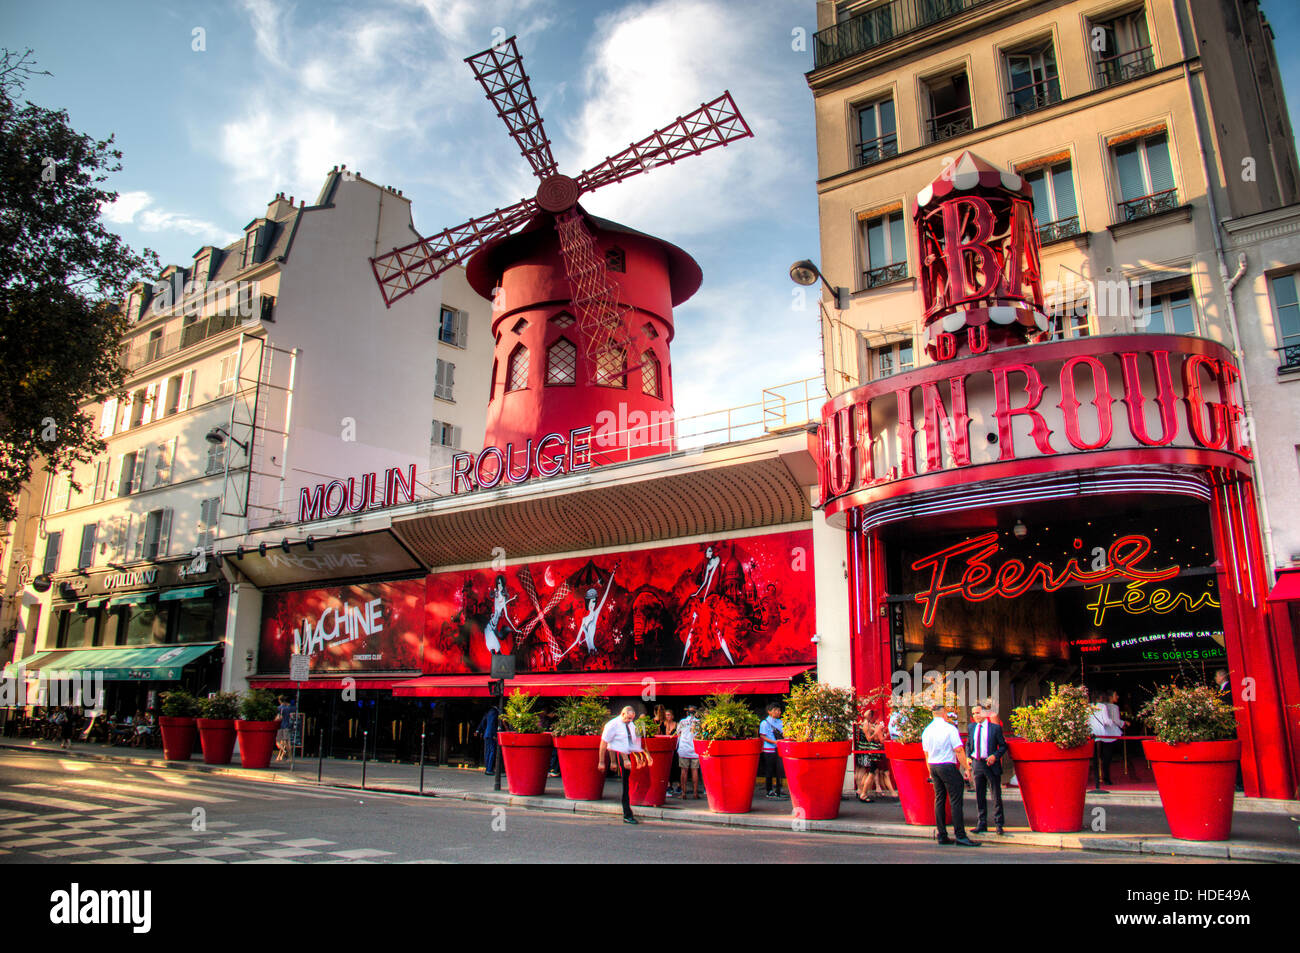 Grand casino moulin rouge stuttgart no deposit slot games australia